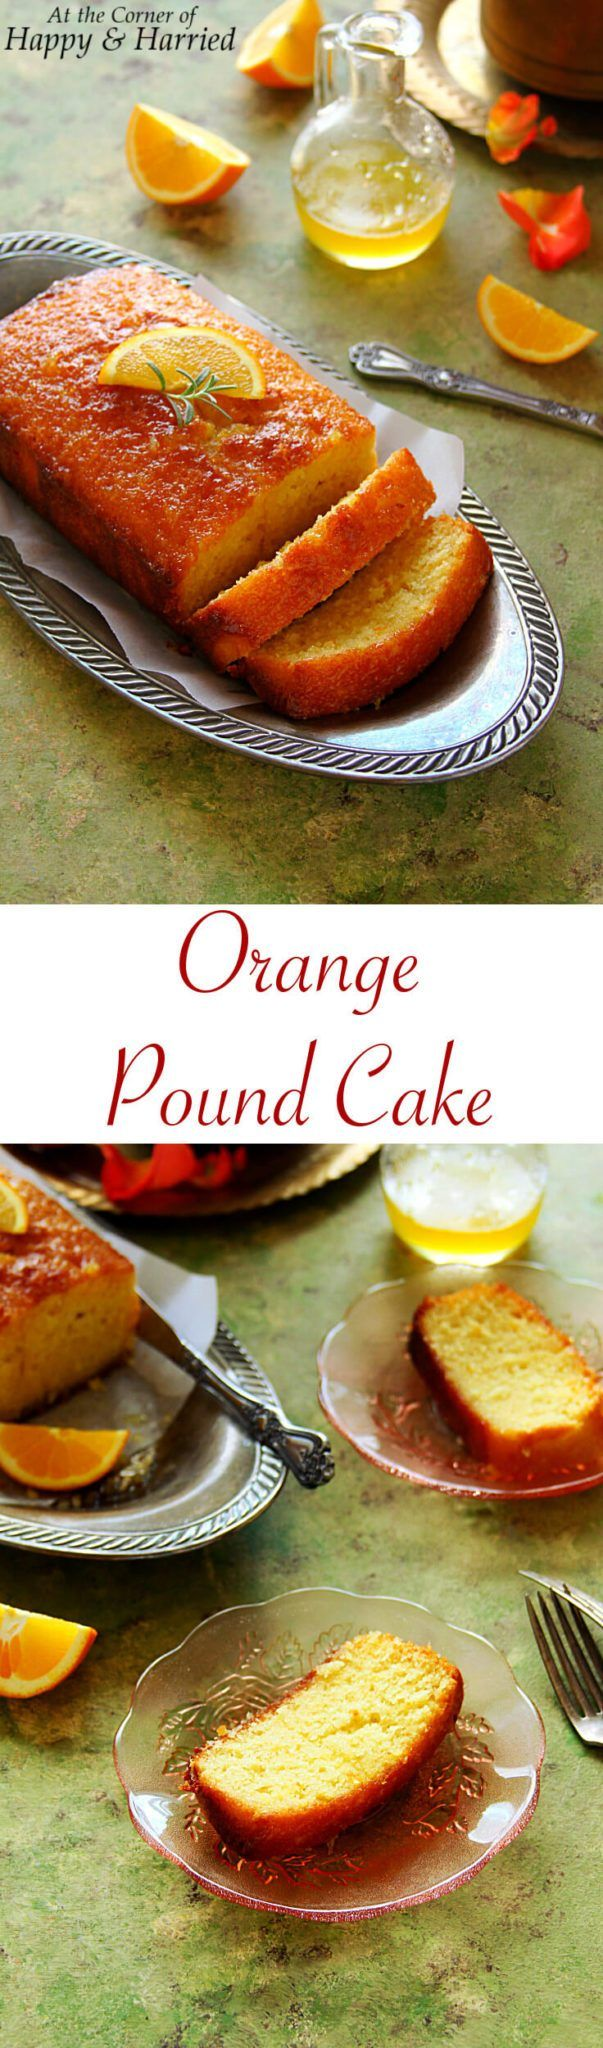 A delicious pound cake bursting with fresh orange flavors is the perfect way to bring a spot of sunshine to your Holiday table! Note (Dec 1st, 2017): This blog post was originally published for Chr…